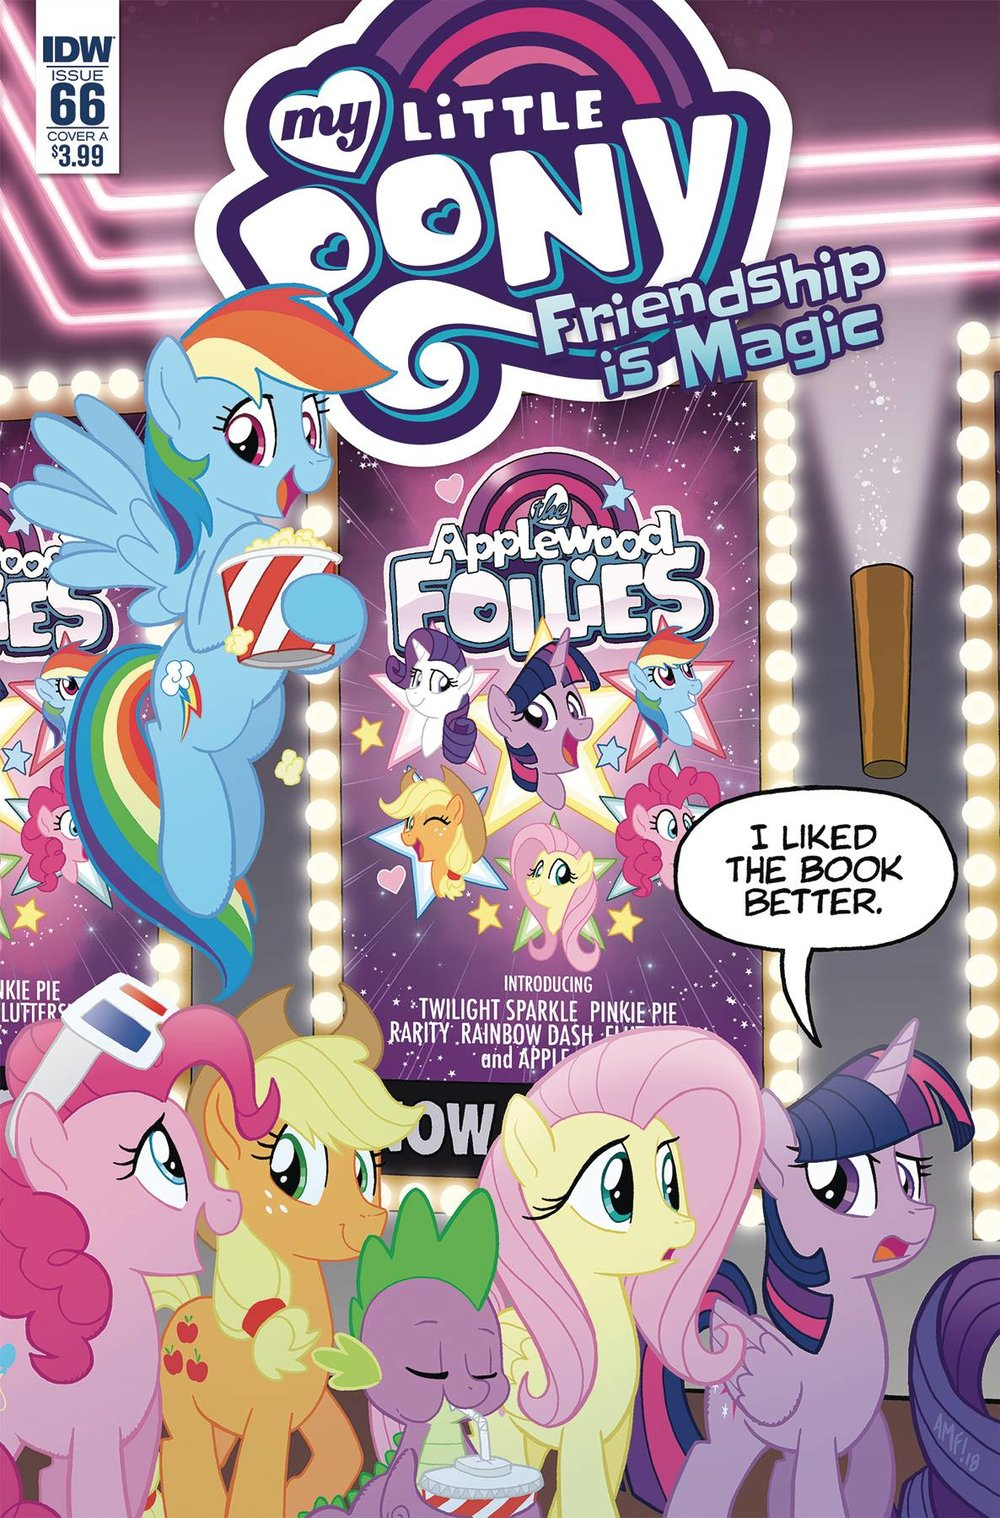 MY LITTLE PONY FRIENDSHIP IS MAGIC 66 CVR A FLEECS.jpg